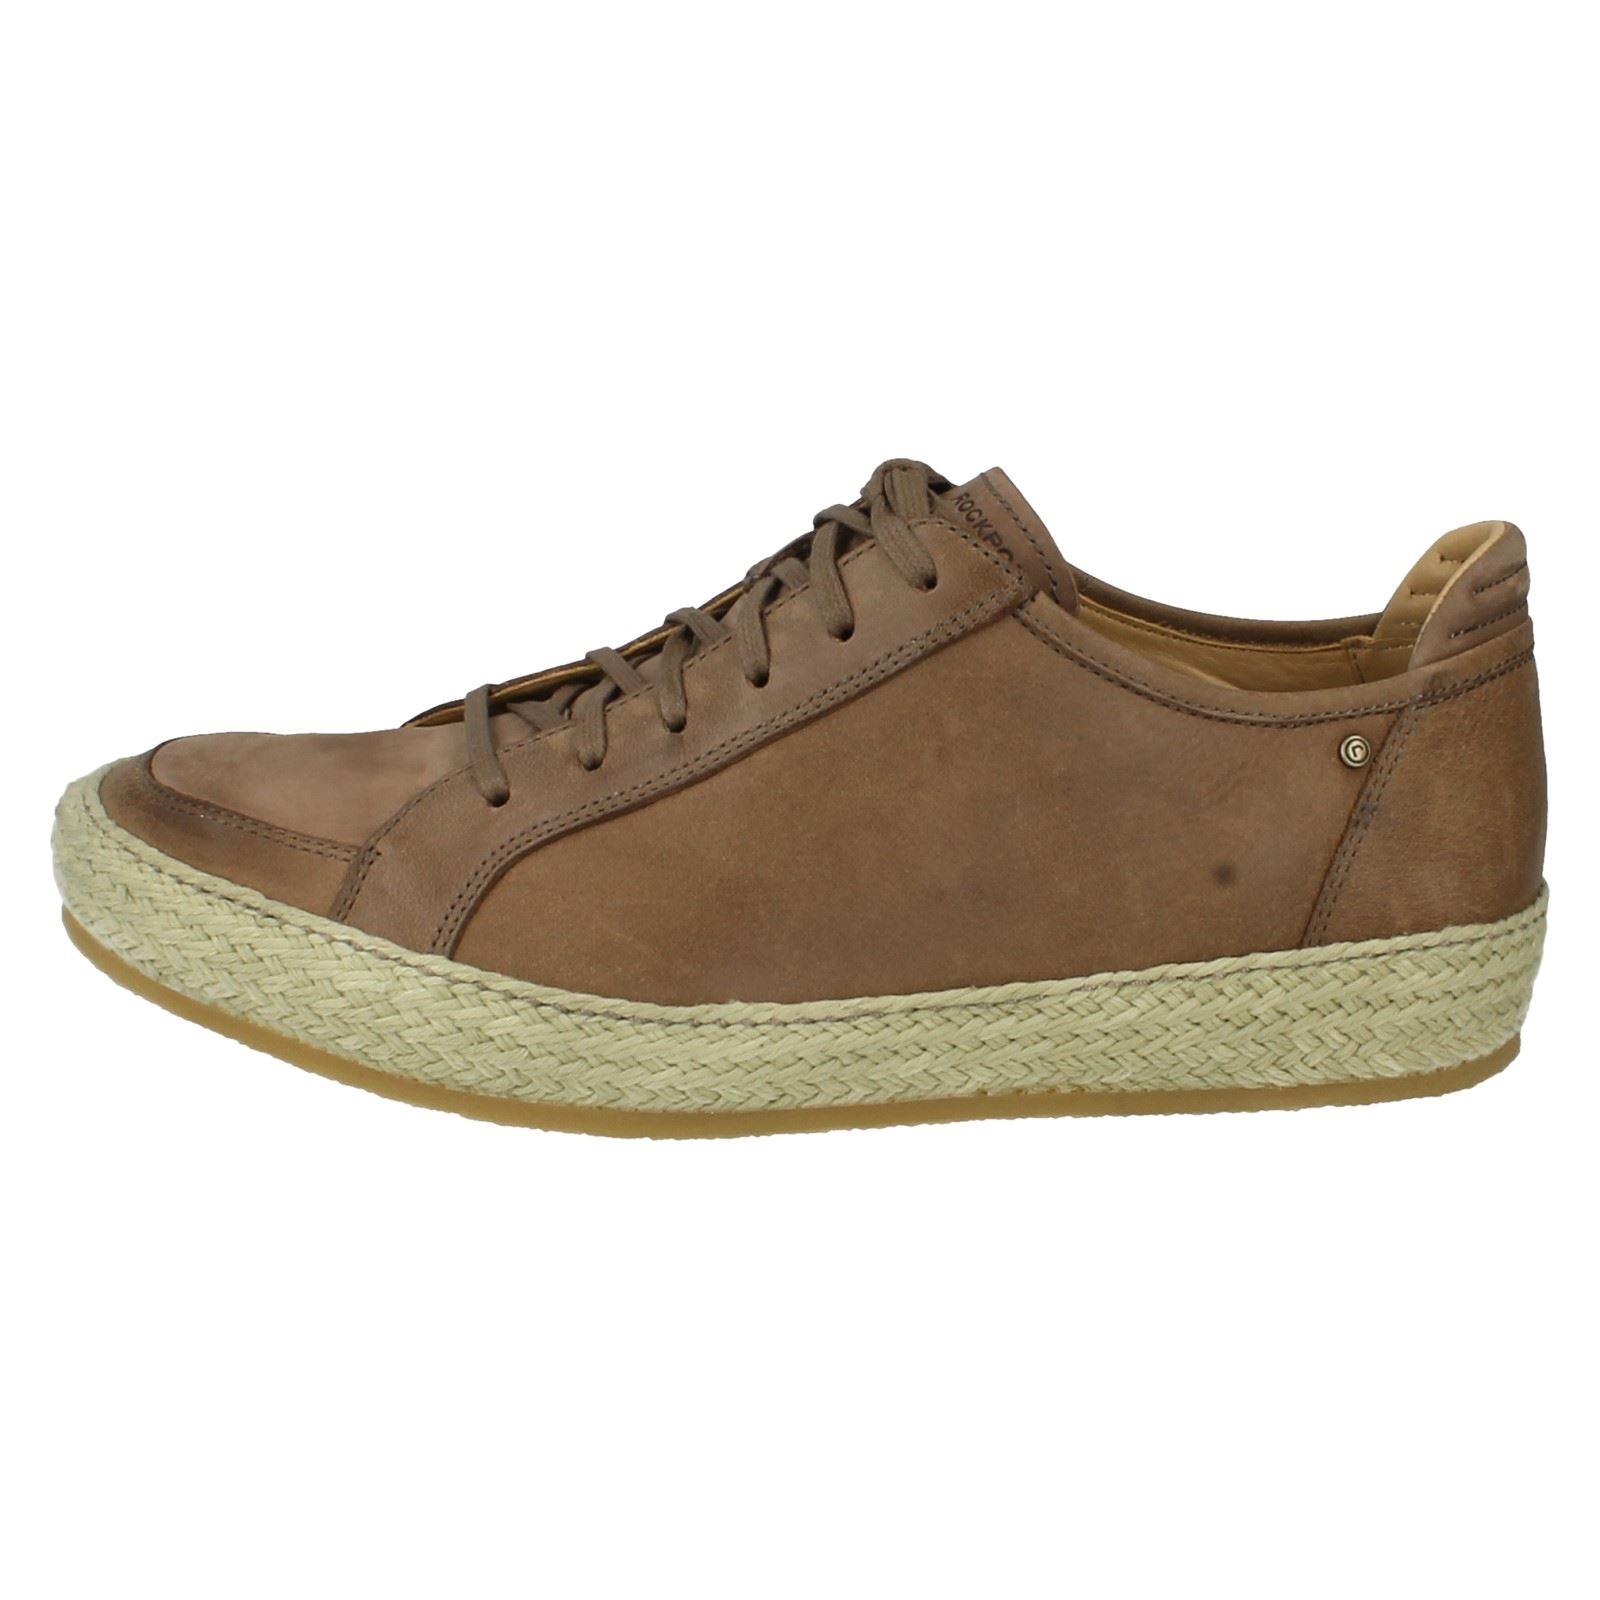 page rockport for men mens casual shoes mens shoes mens